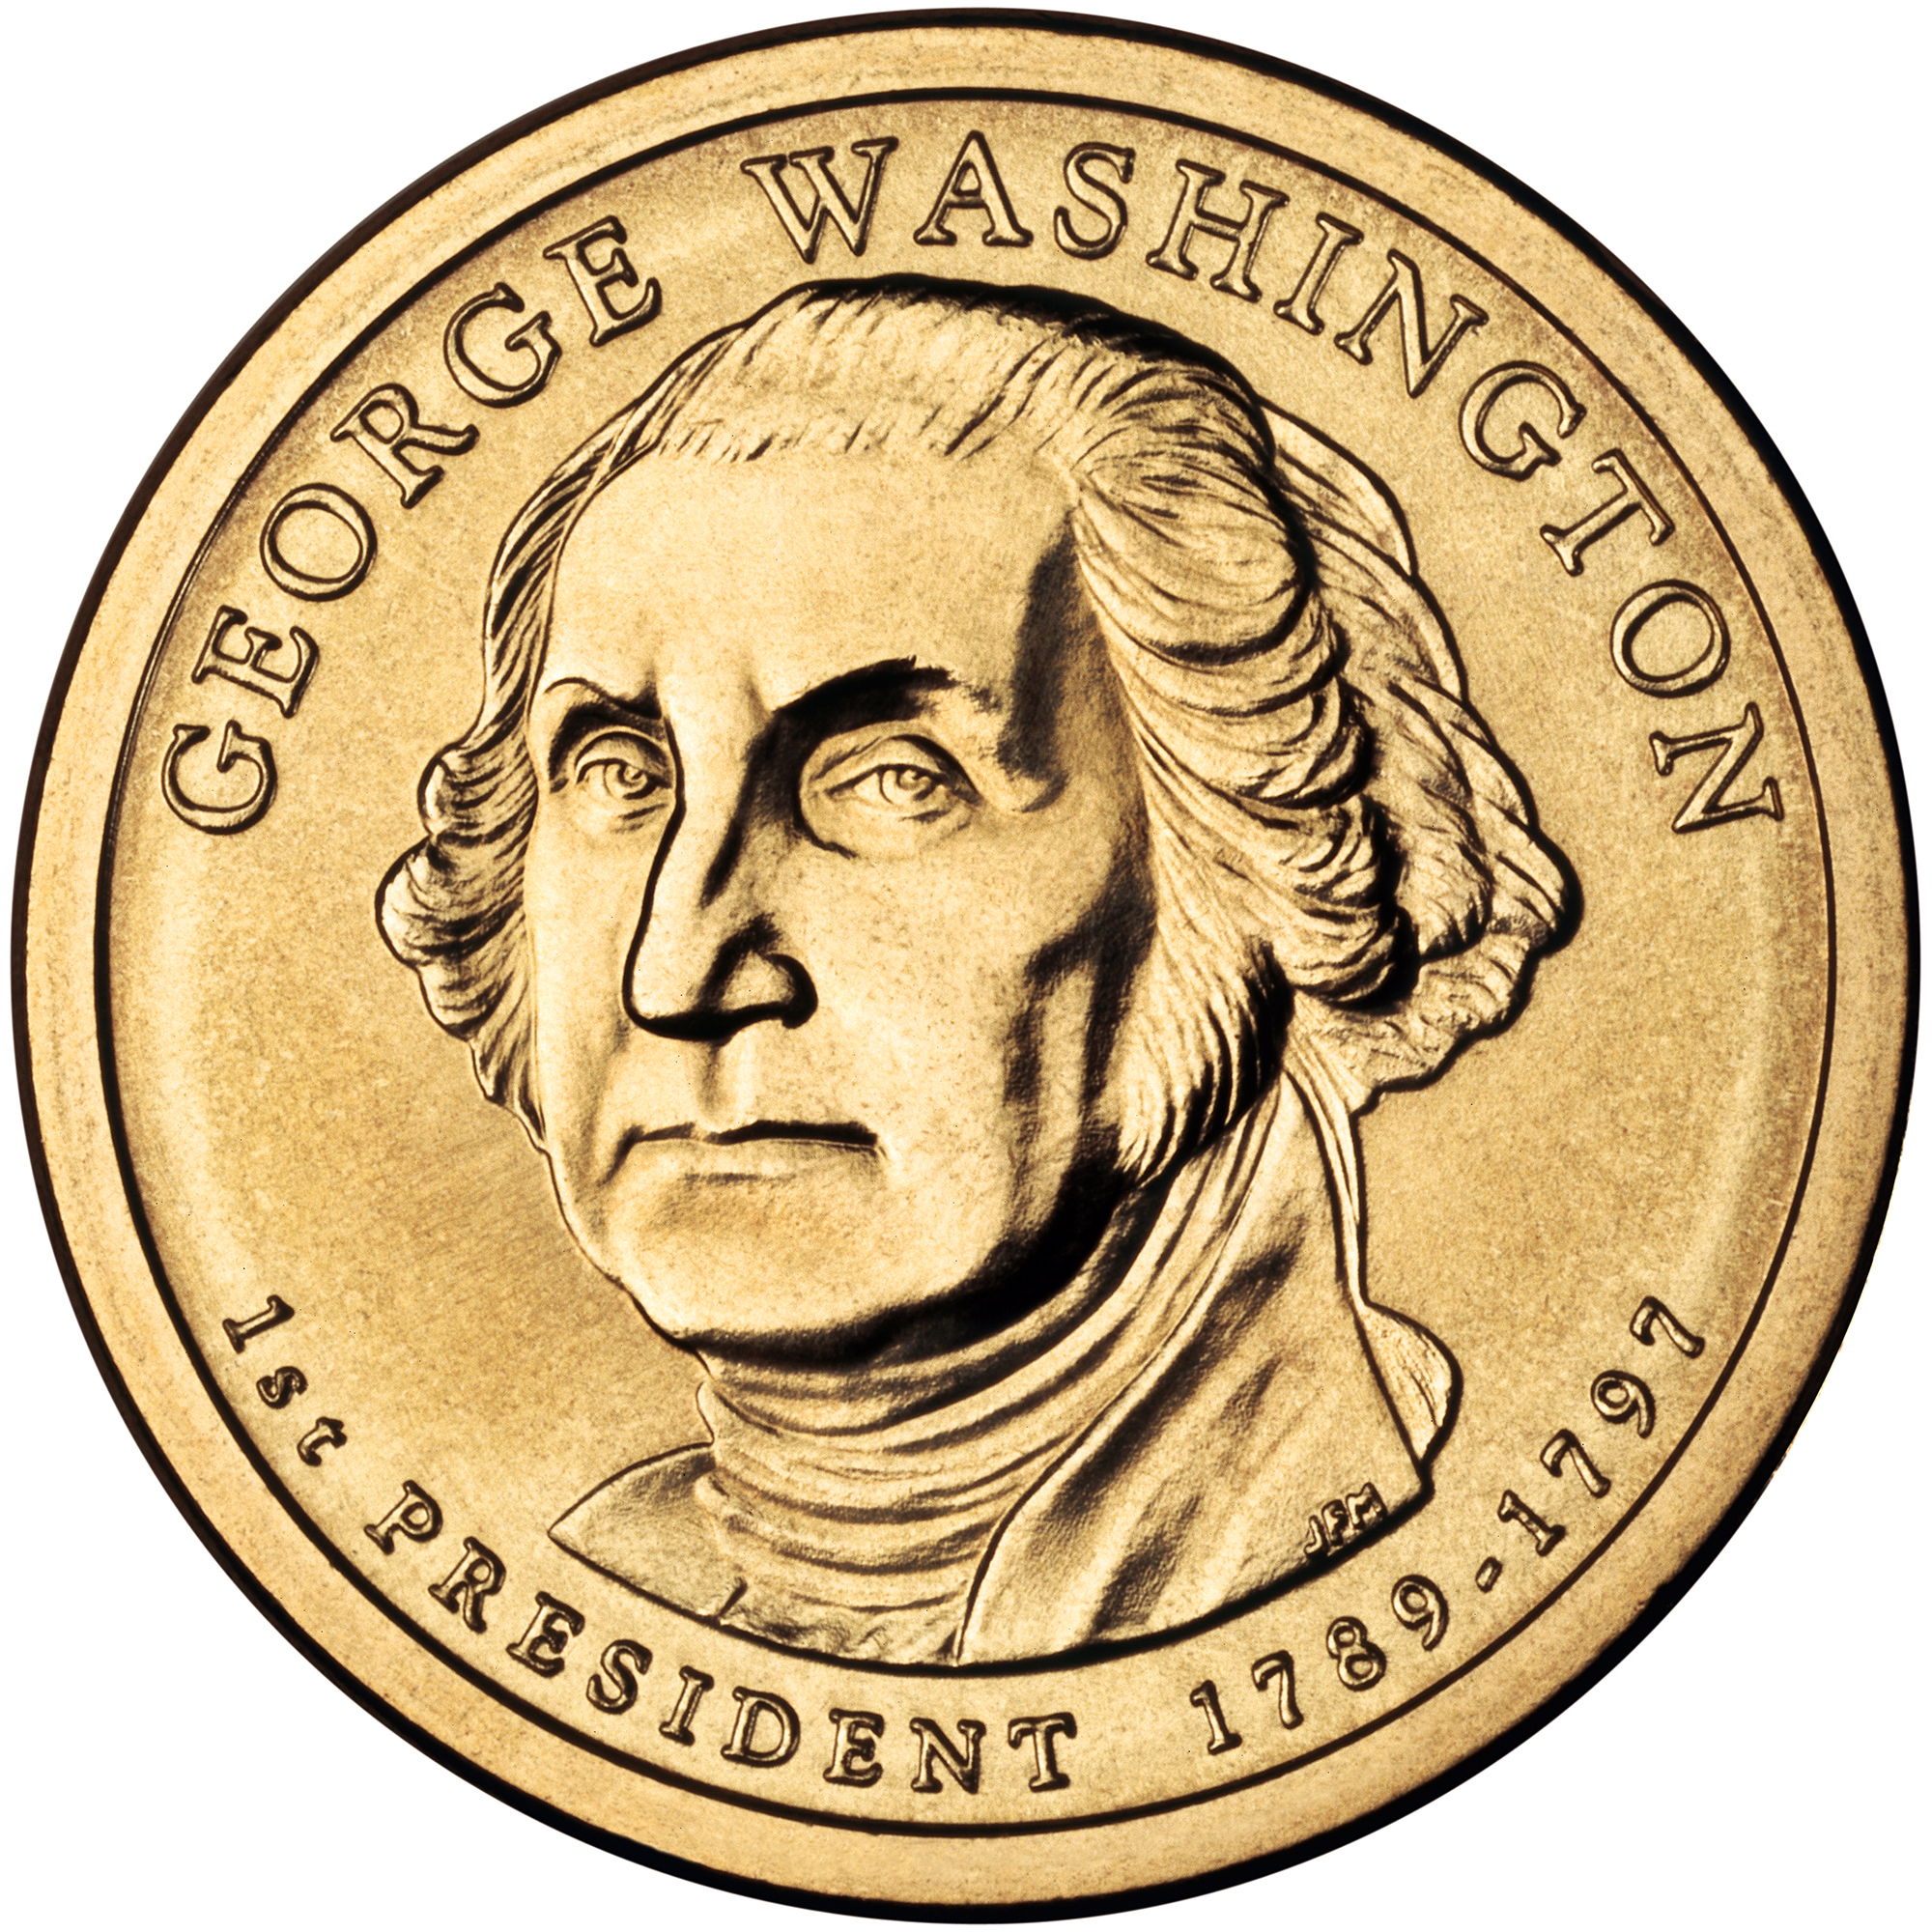 2007 Presidential Dollar Coin George Washington Uncirculated Obverse